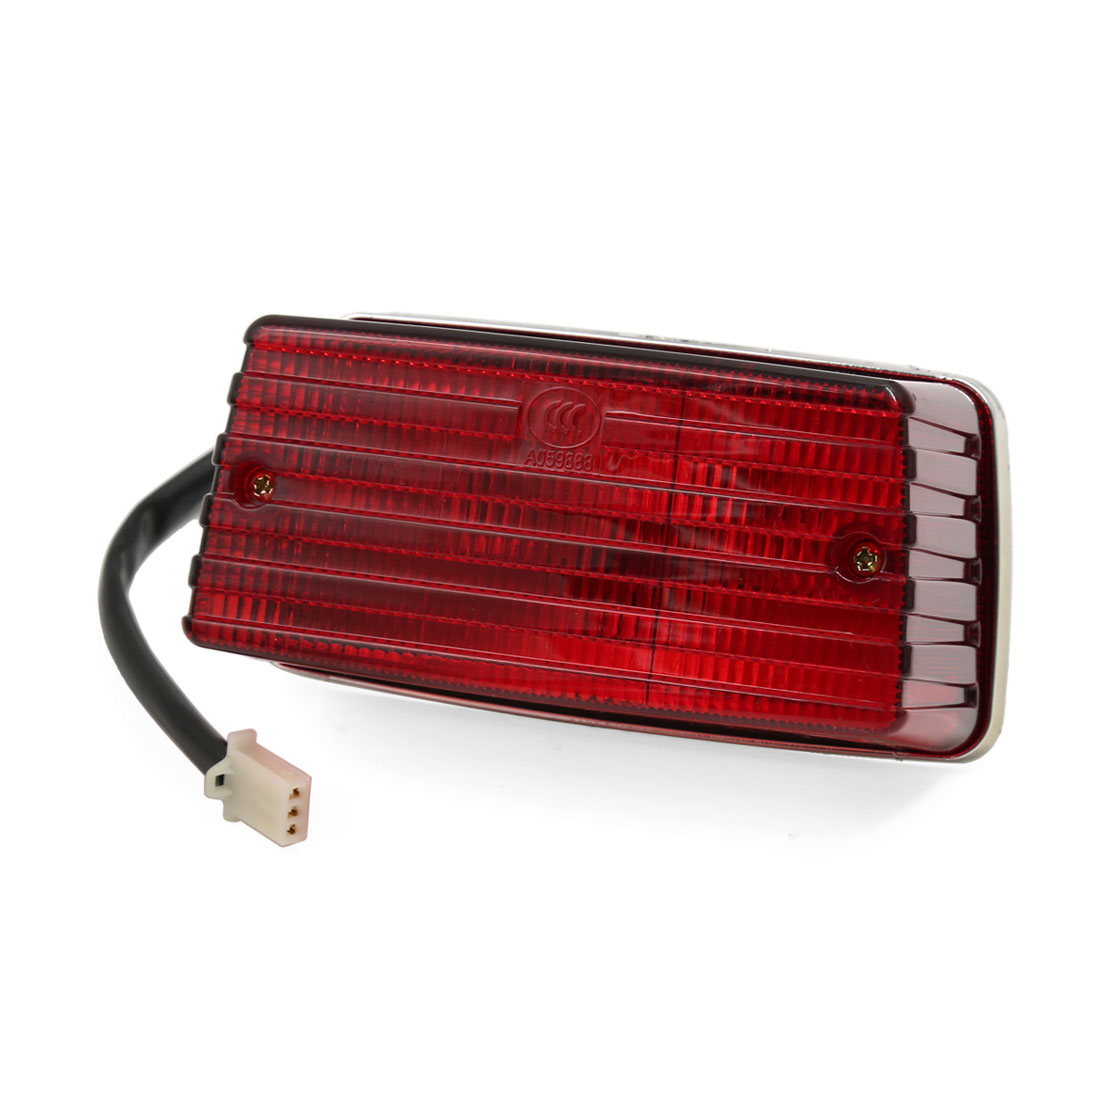 Red Motorcycle Brake Stop License Plate Integrated Tail Light DC 12V for GS125